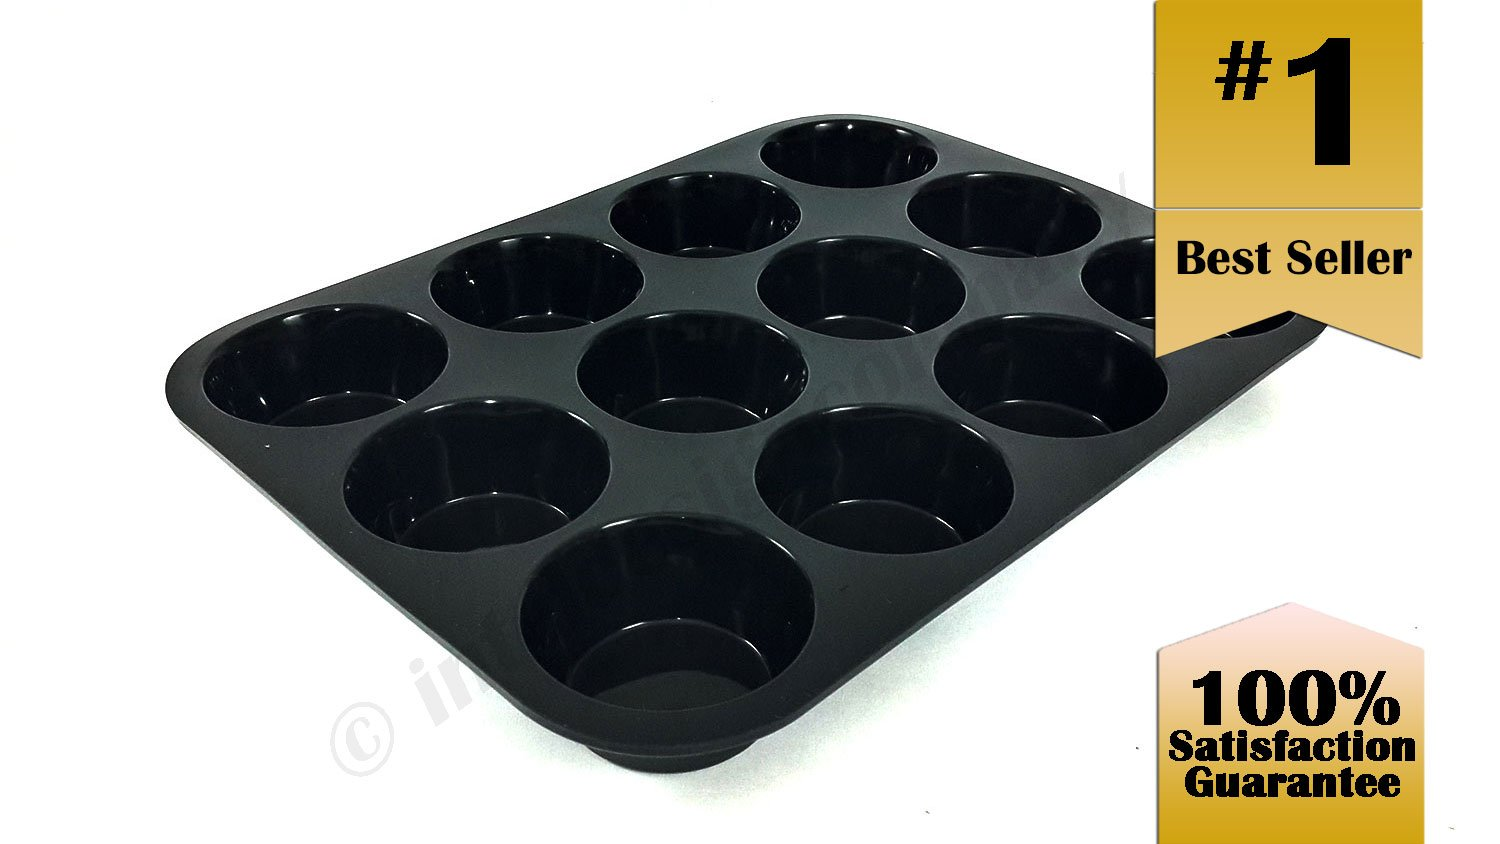 Premier Kitchen ~ 12 Cup Muffin Pan and Cupcake Maker, Bakeware, Black